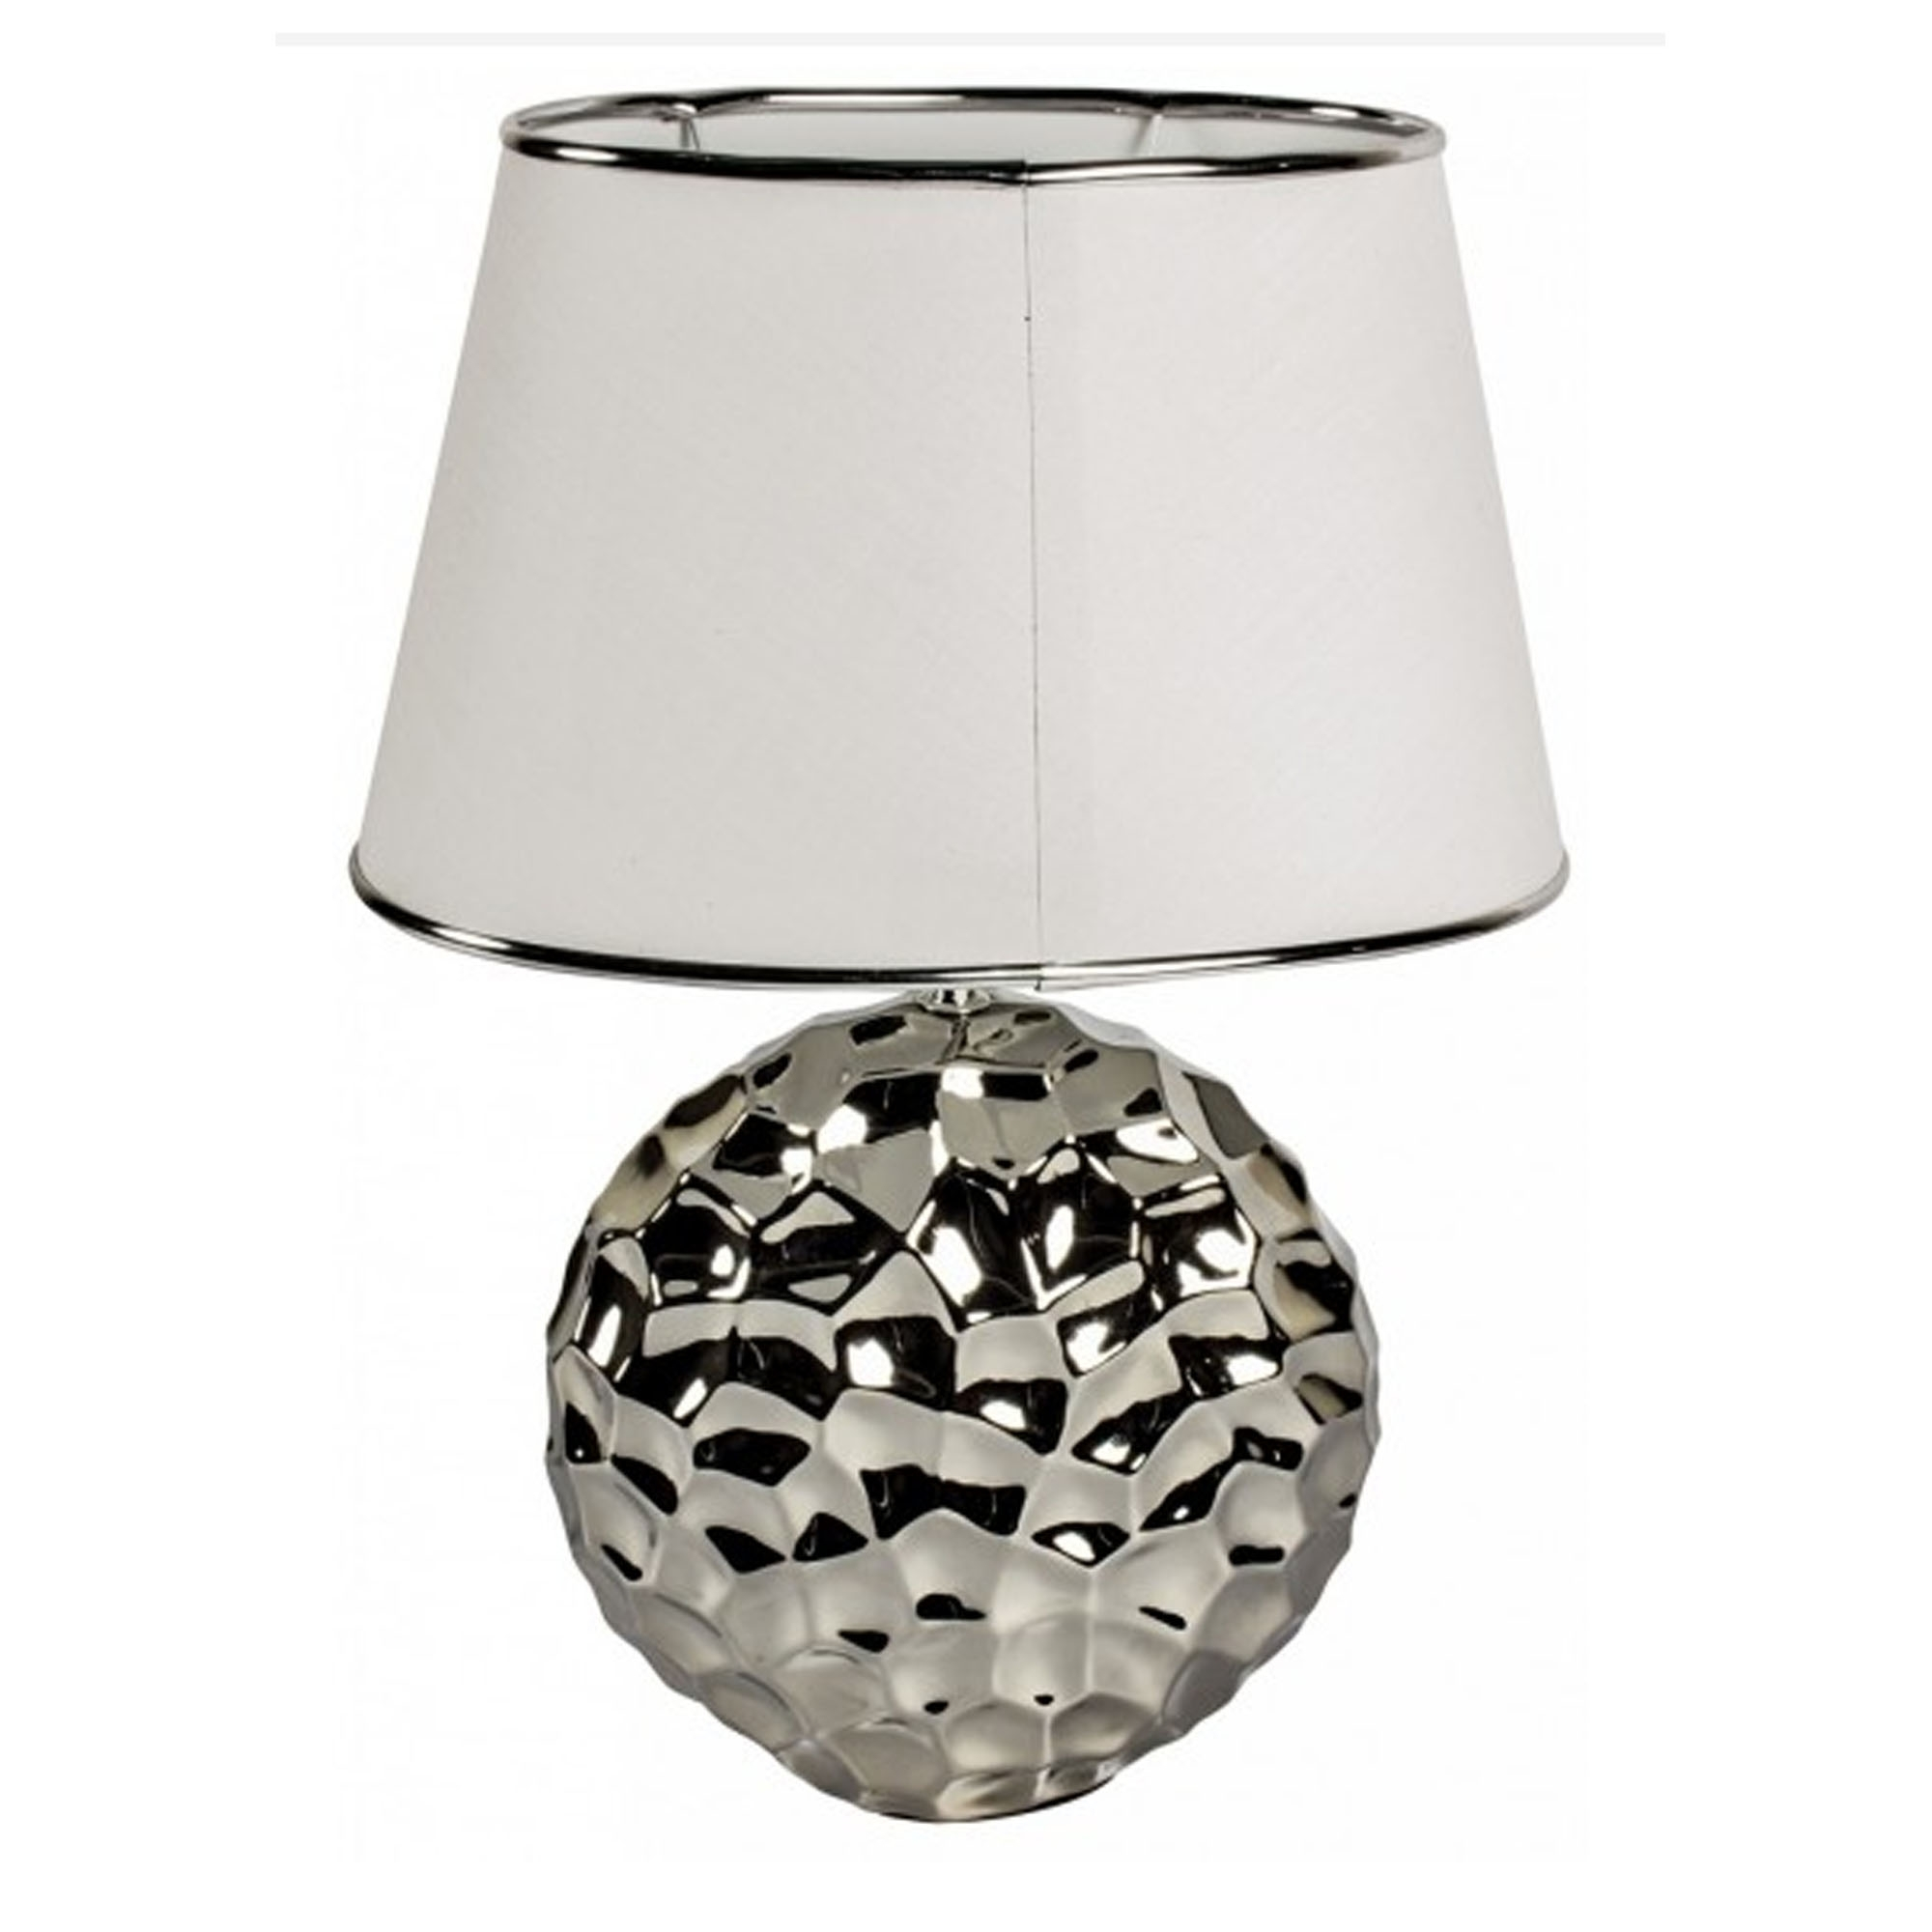 lamp zoom table contemporary modern silver furniture hammered